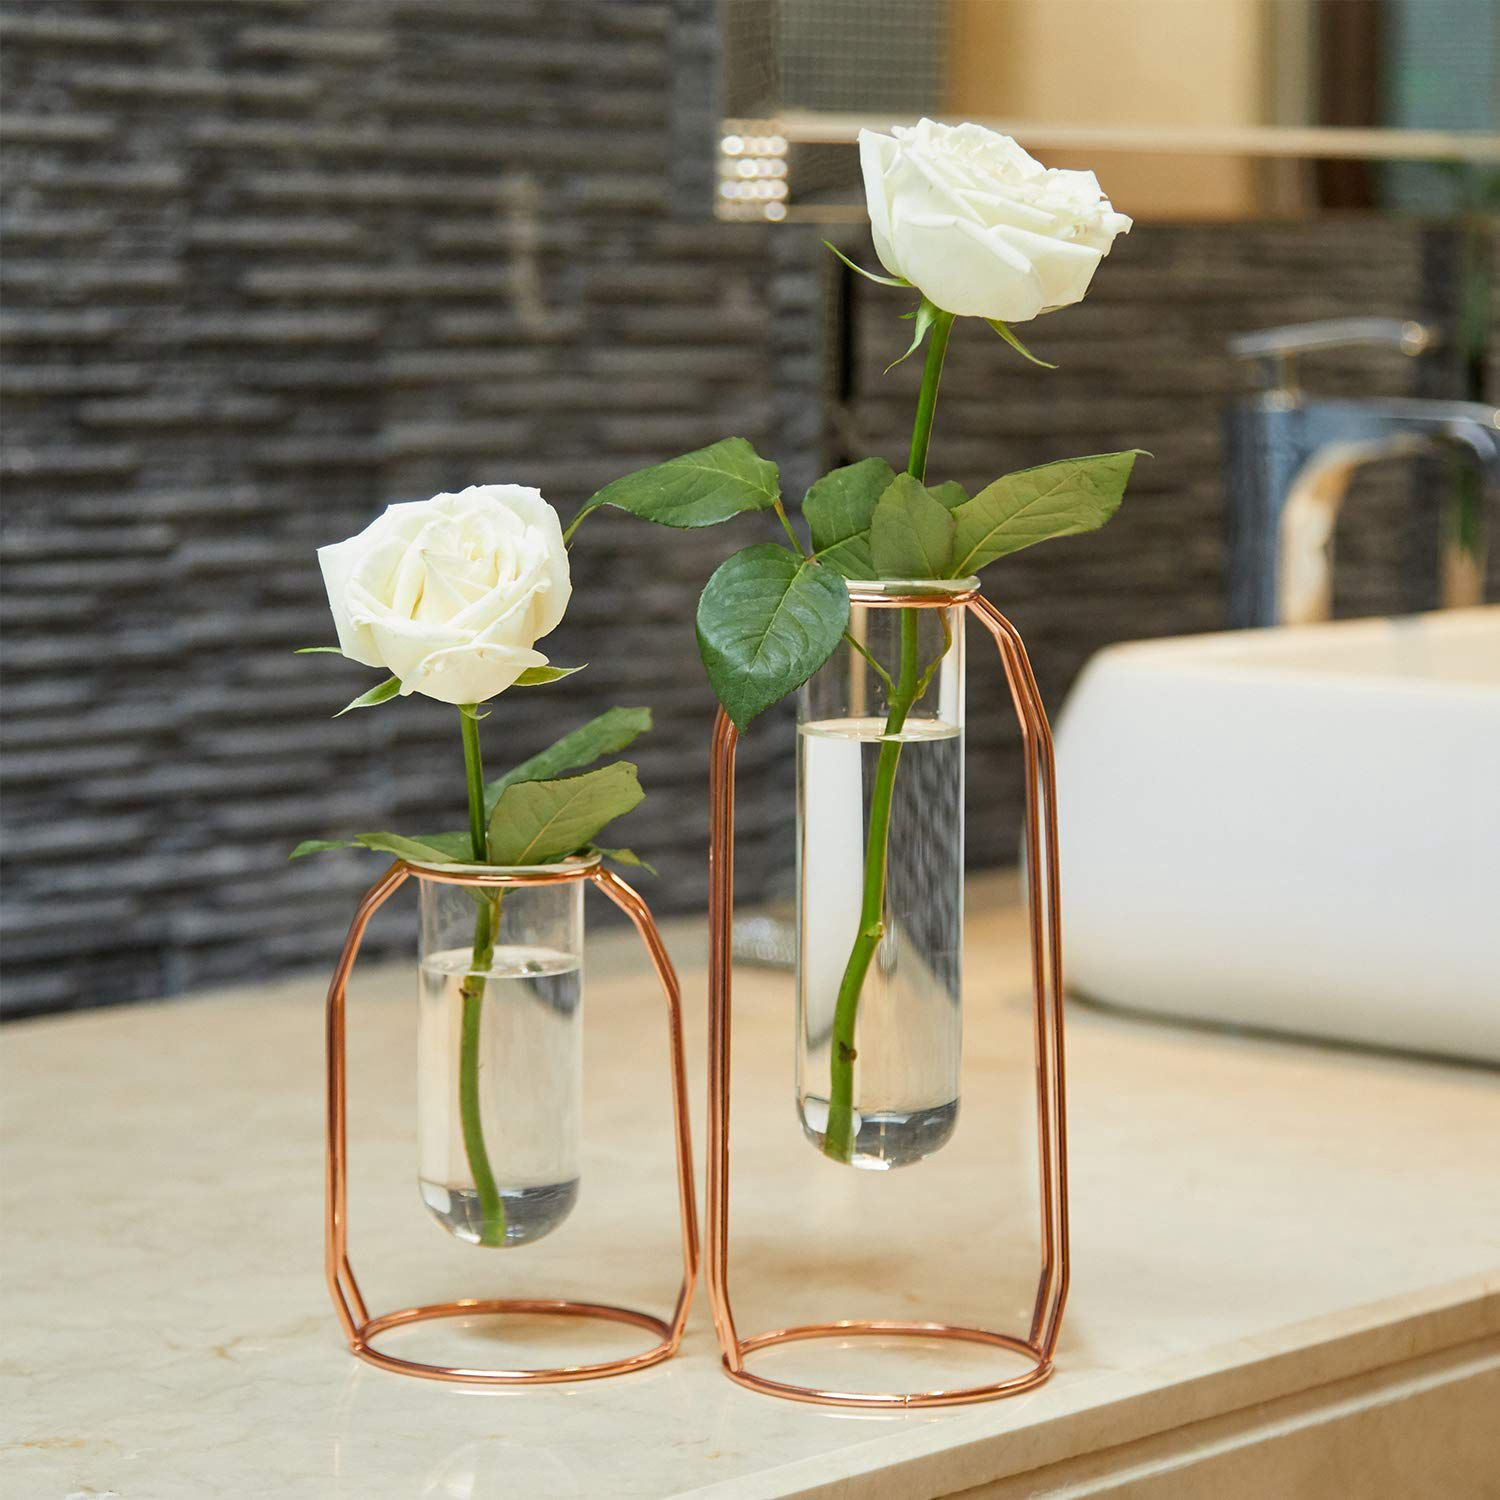 Set Of 2 Metal Wired Pen Brushes Holder Unique Cylinder Vases Design Desk Stationery Organizer Glass+Metal For Decor